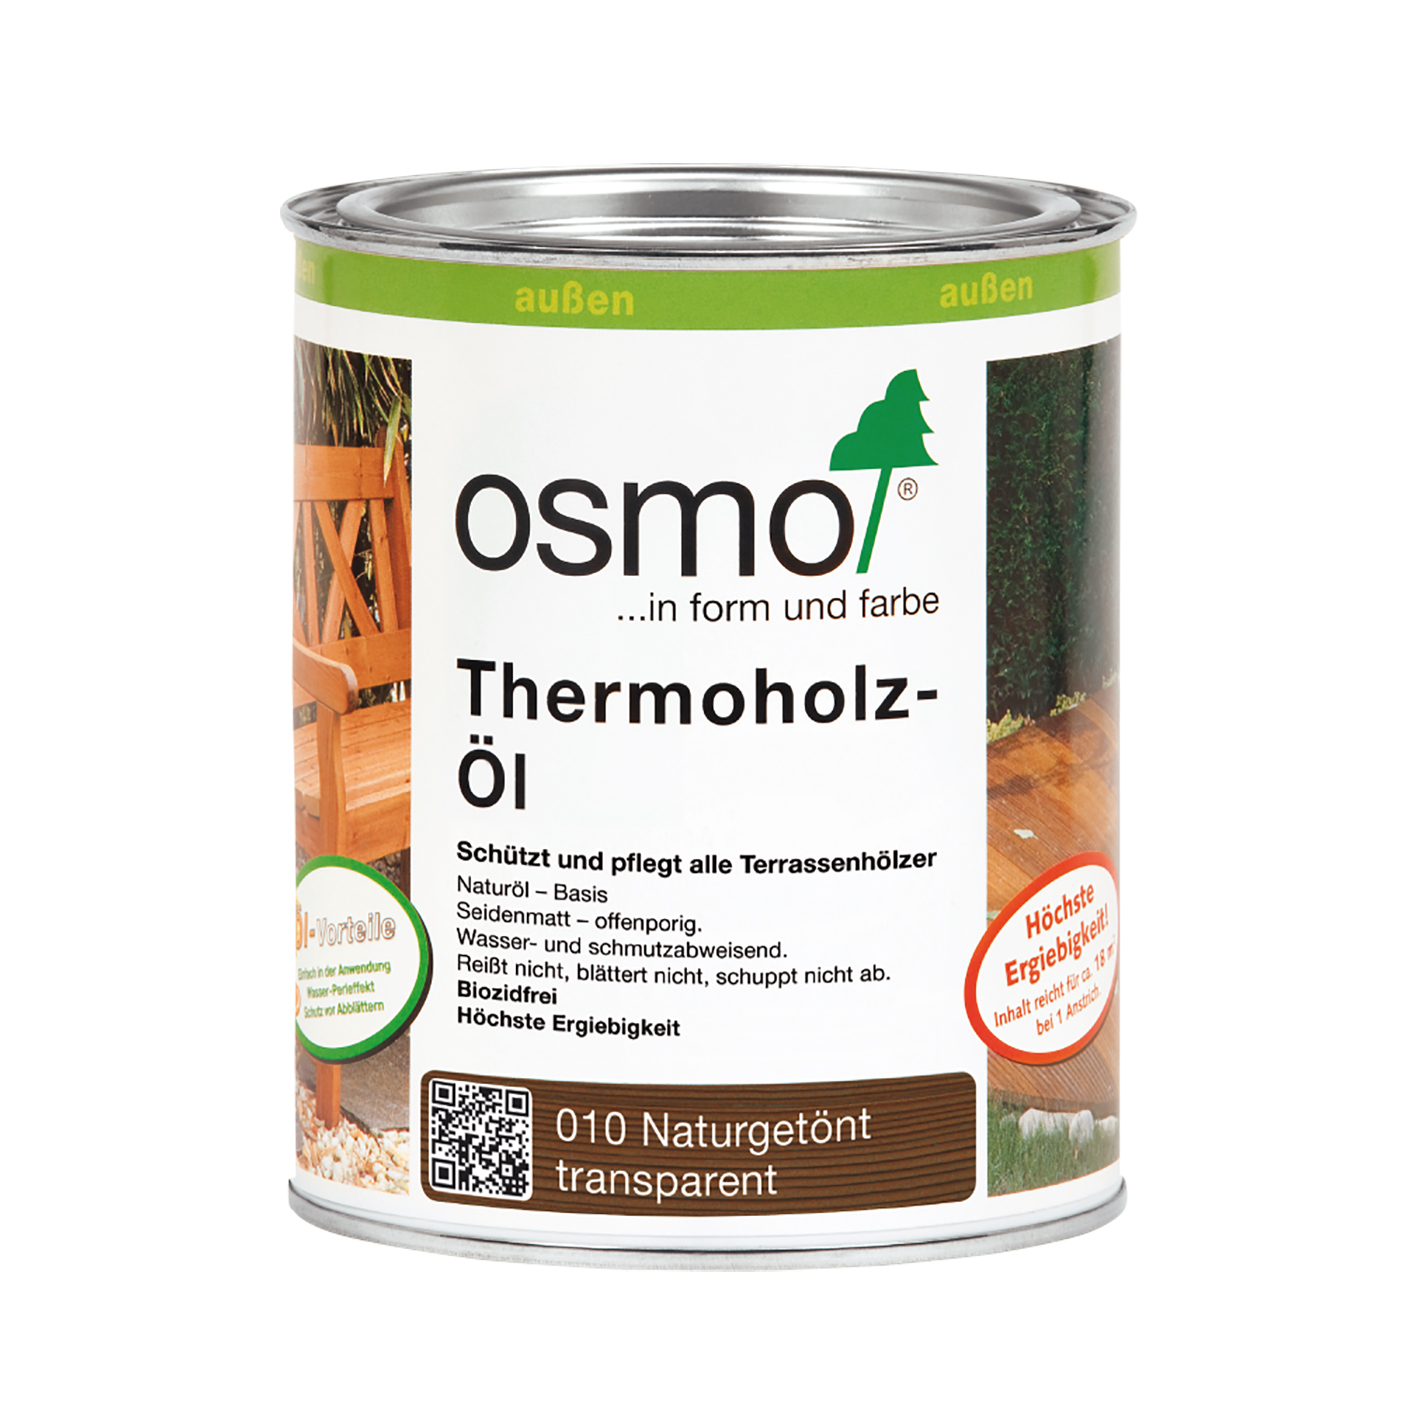 Osmo thermo-wood oil 750ml